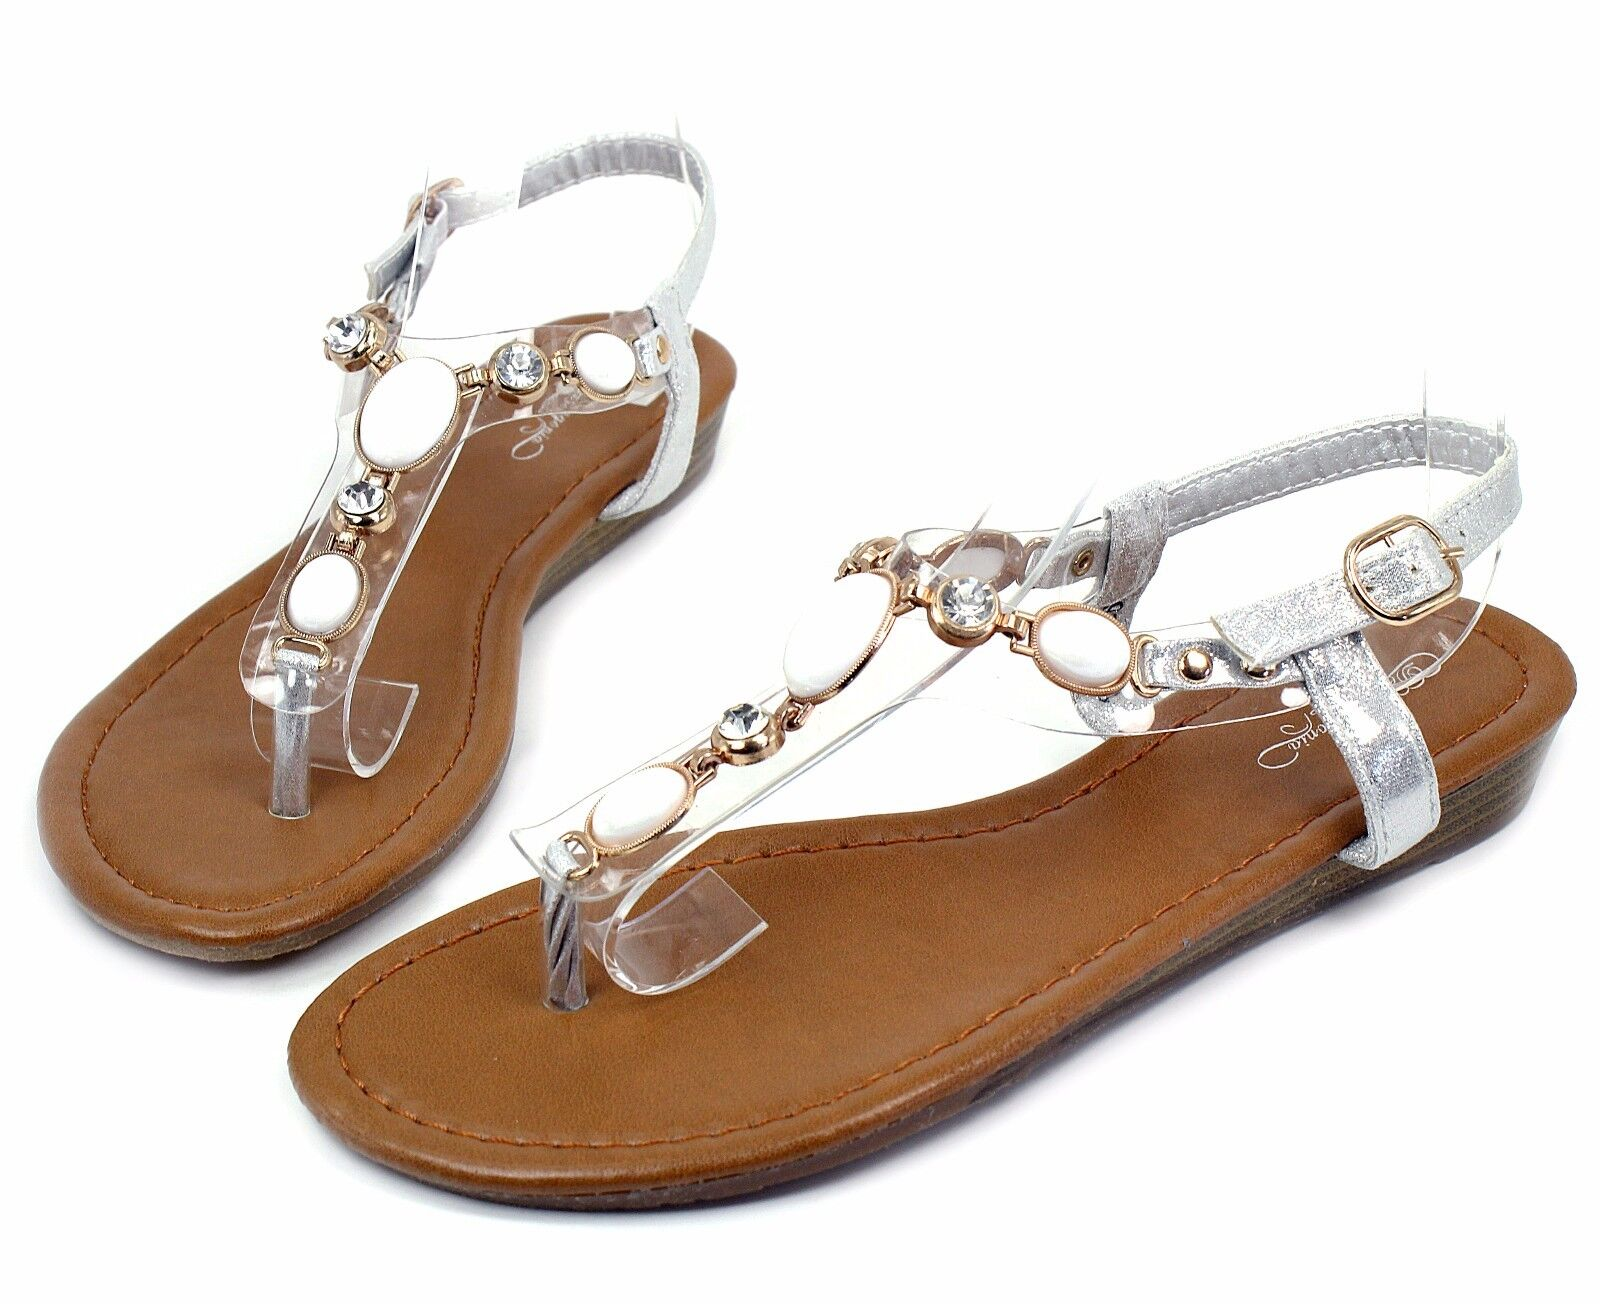 THW-26 New Heel Gladiator Buckle Wedge Low Heel New Sandals Casual Women Shoes Silver 8.5 ed091c